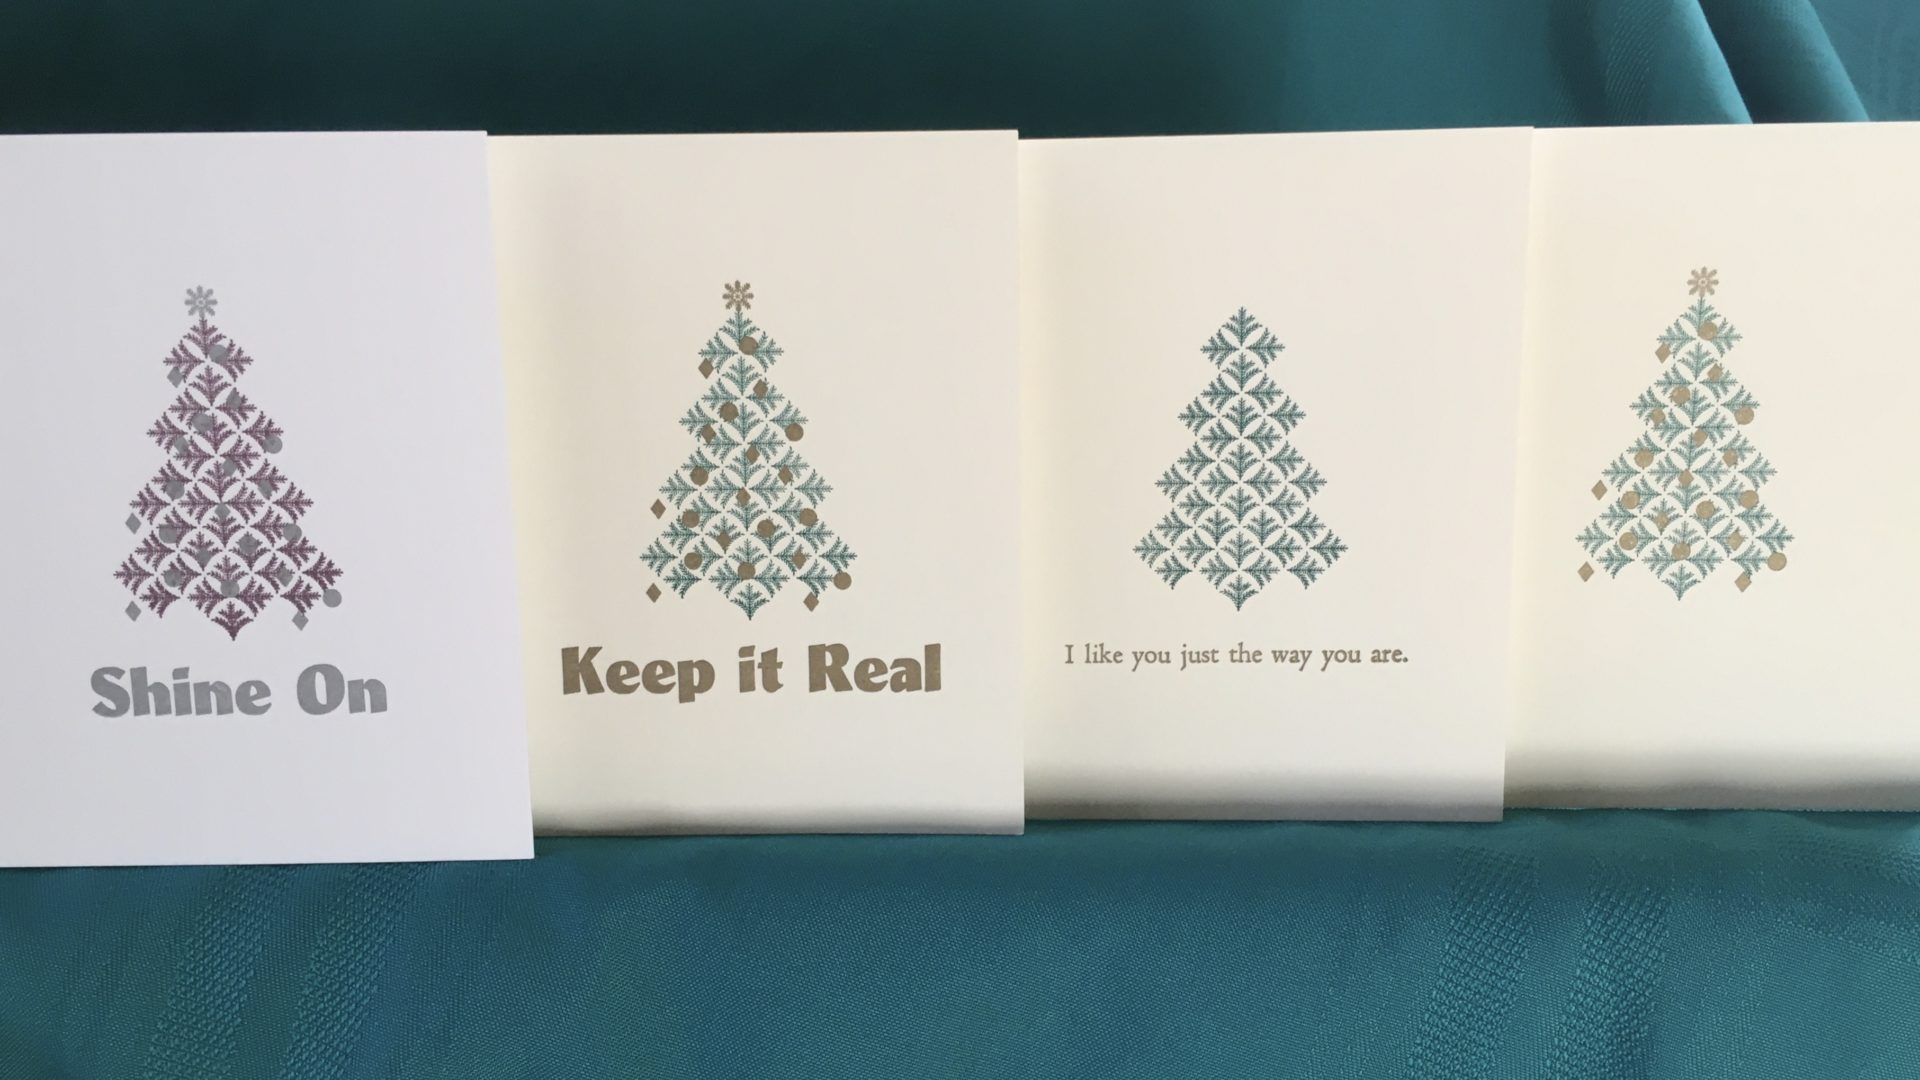 Shows 4 new Christmas card designs